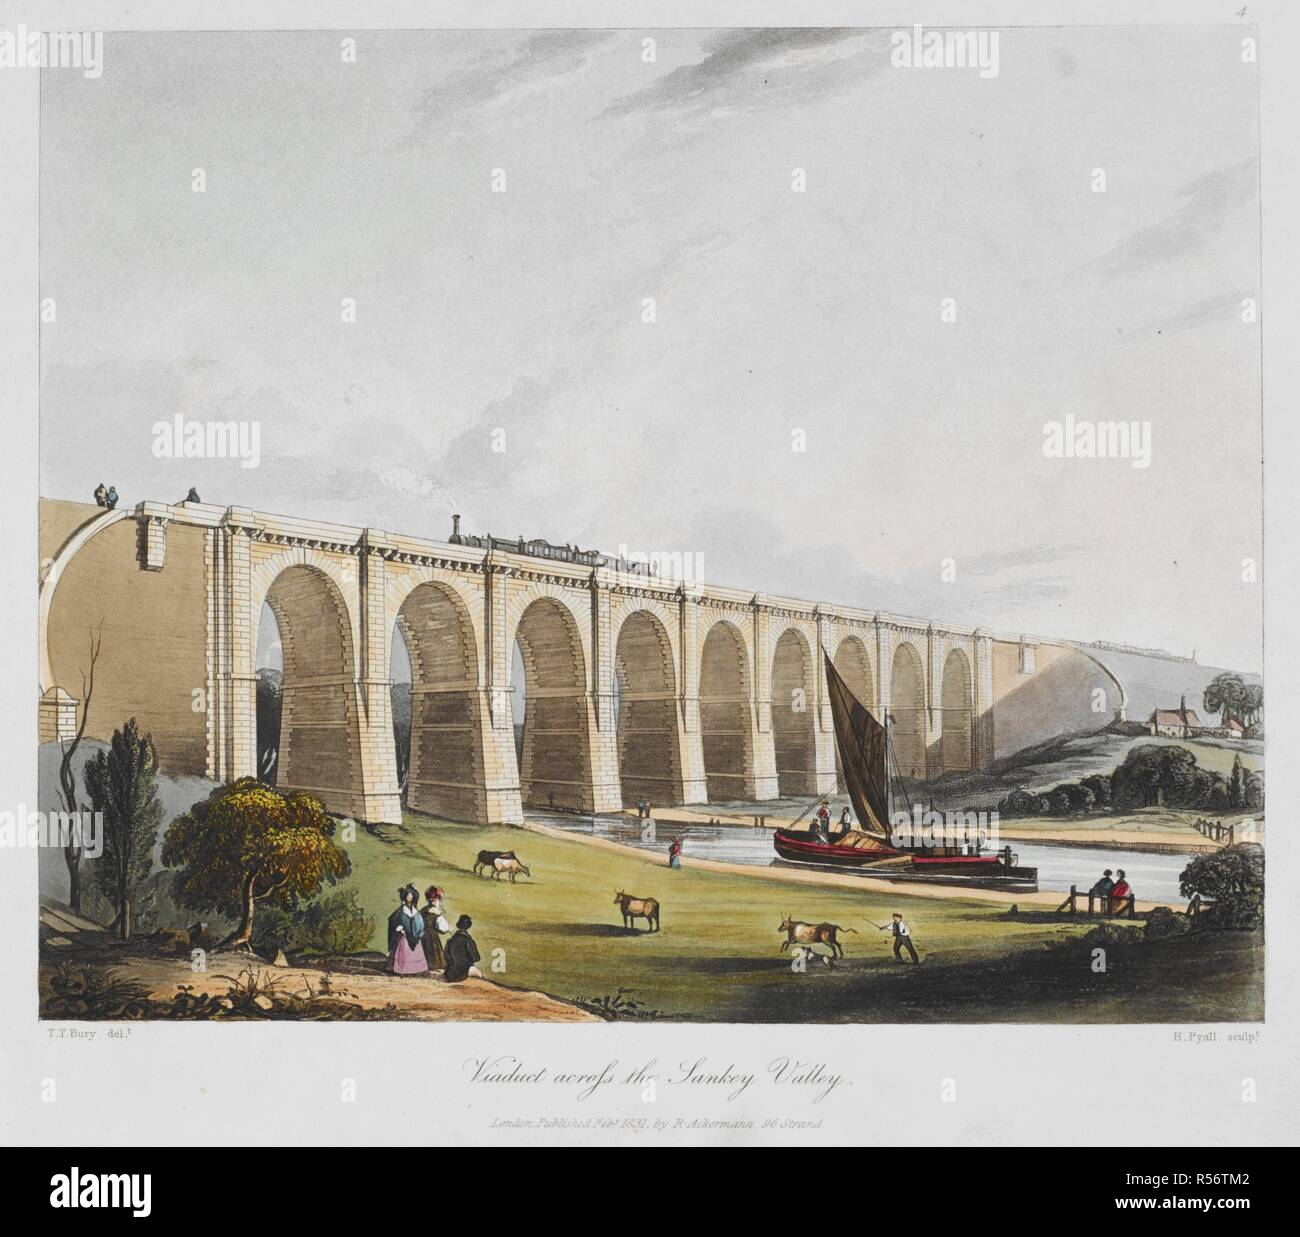 The viaduct across the Sankey Valley on the Liverpool to Manchester Railway. Coloured views on the Liverpool and Manchester railway : with plates of the coaches, machines, &c., from drawings made on the spot. London : R. Ackermann, 1831. Source: C.190.c.12, plate 4. Language: English. Stock Photo